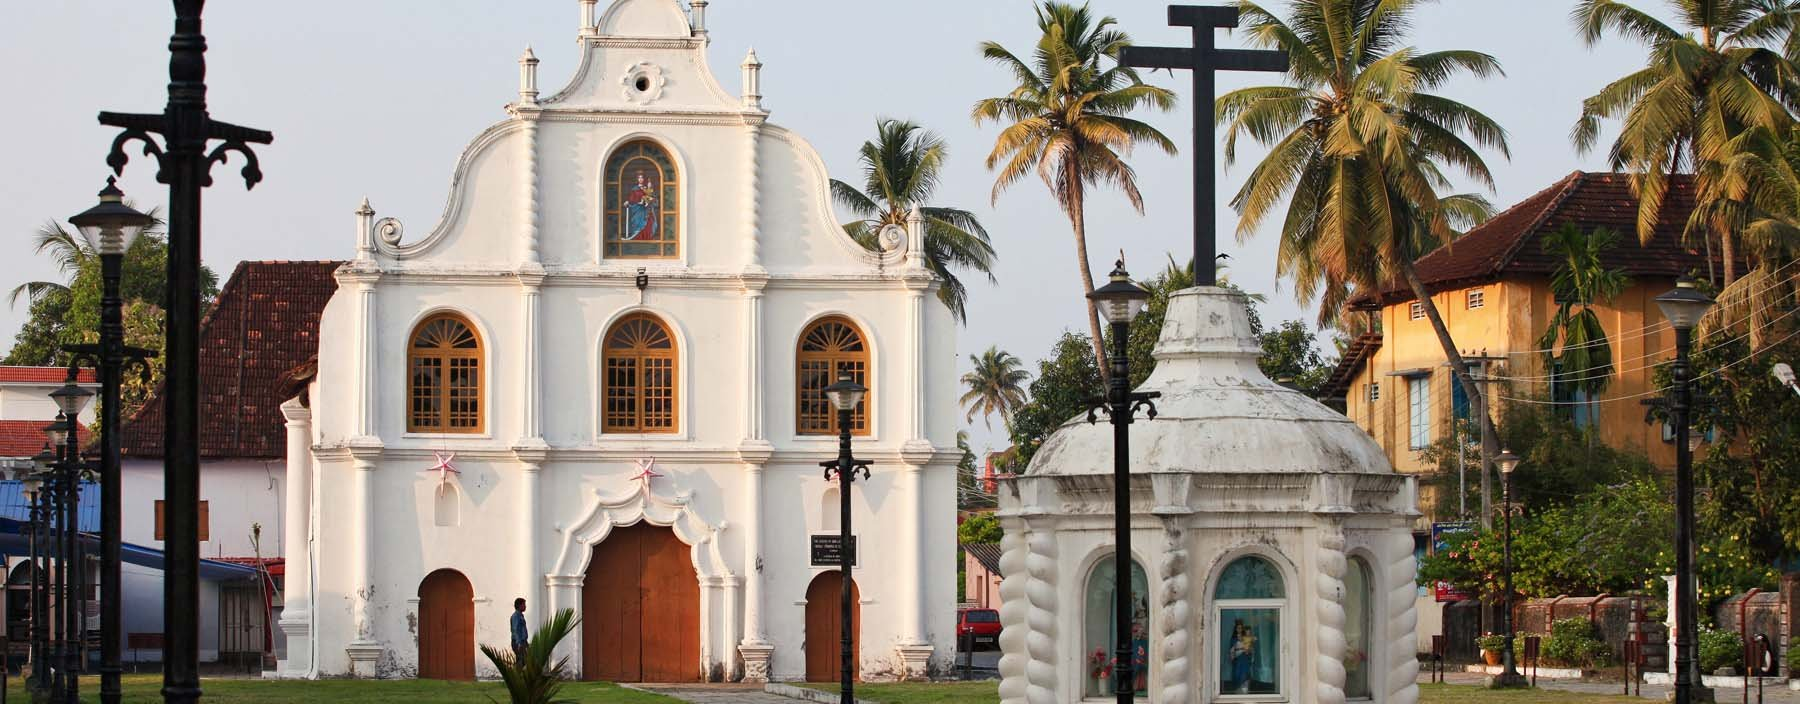 in, cochin, st francis church.jpg